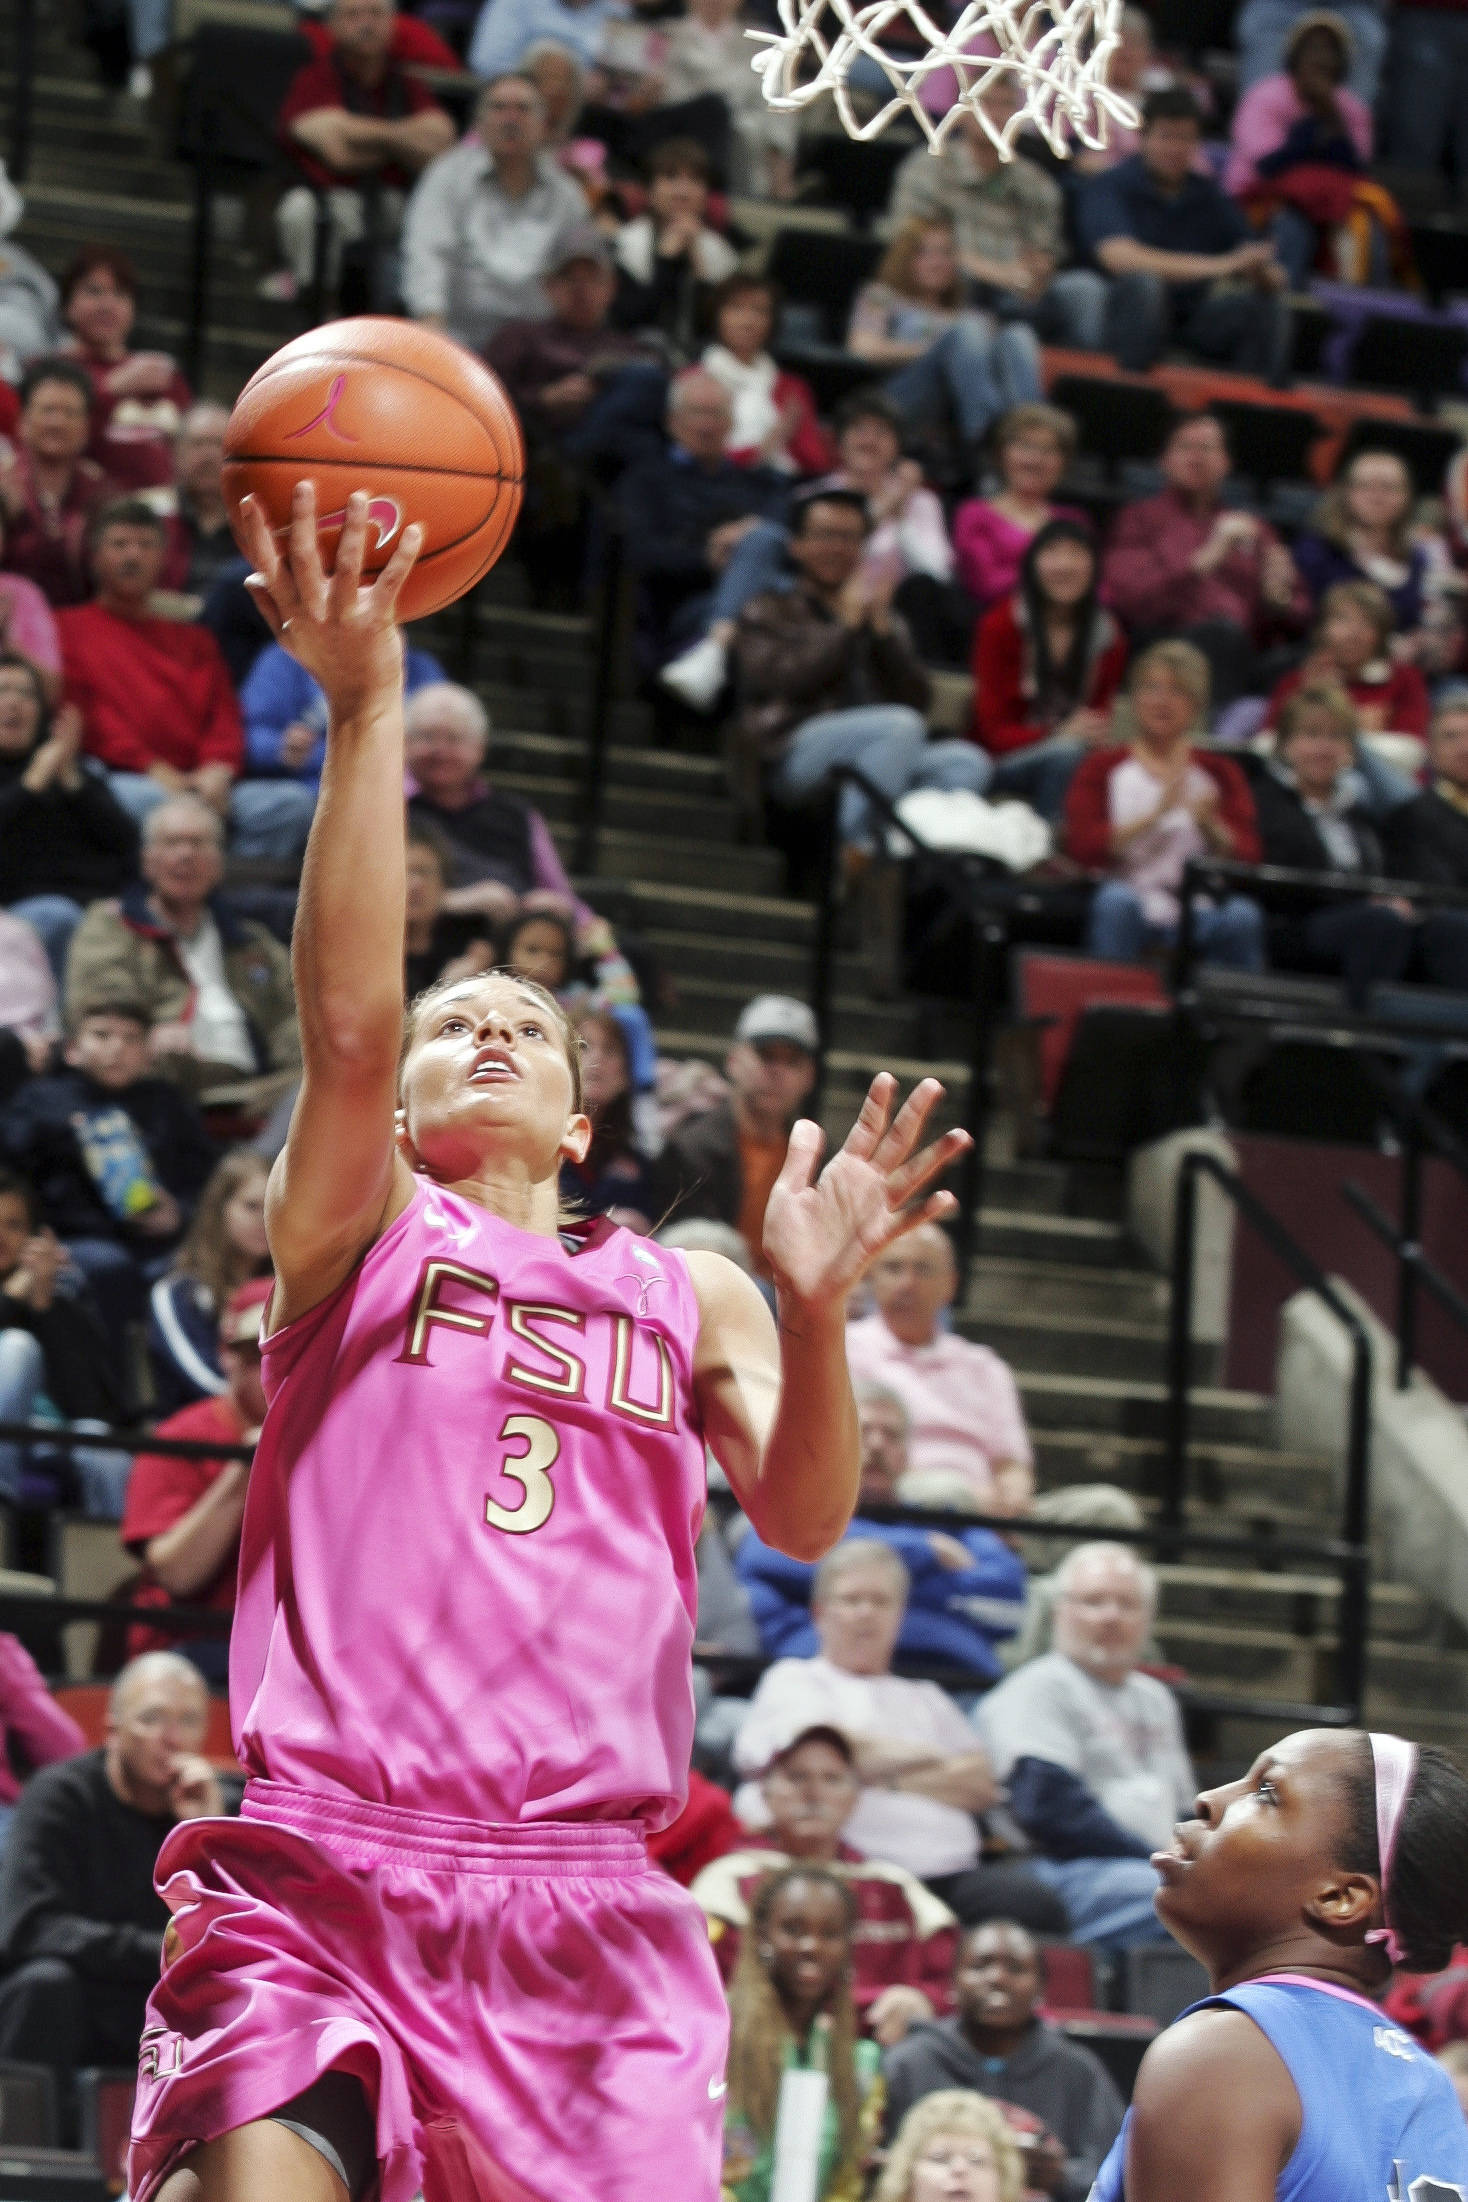 Florida State's Alexa Deluzio (3) shoots a layup after getting past Duke's Chelsea Gray (12). (AP Photo/Phil Sears)